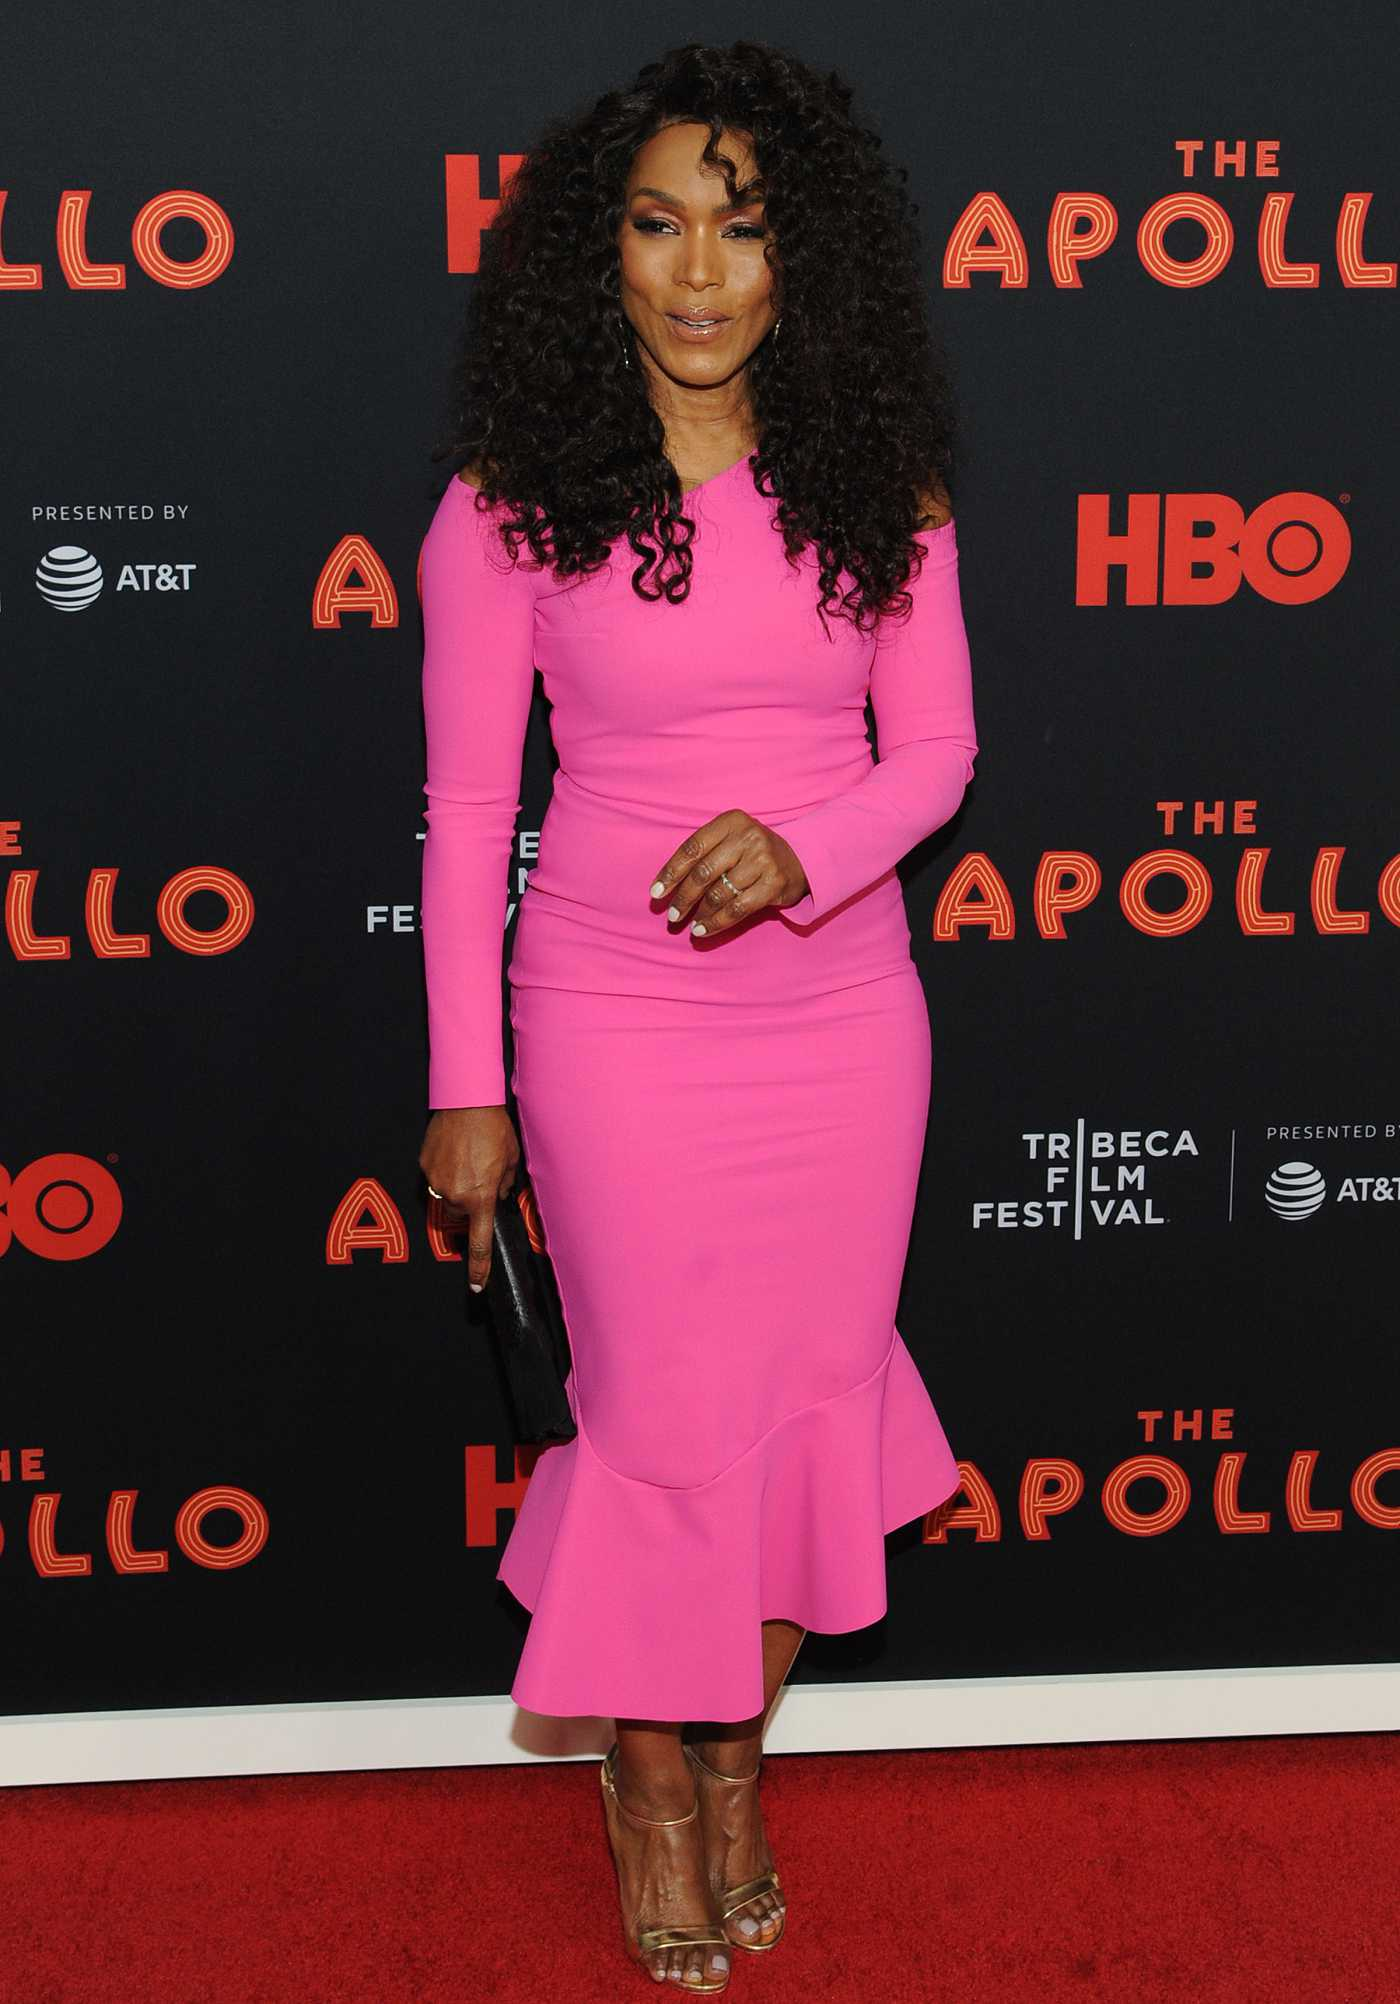 Angela Bassett Attends The Apollo Premiere on Tribeca Film